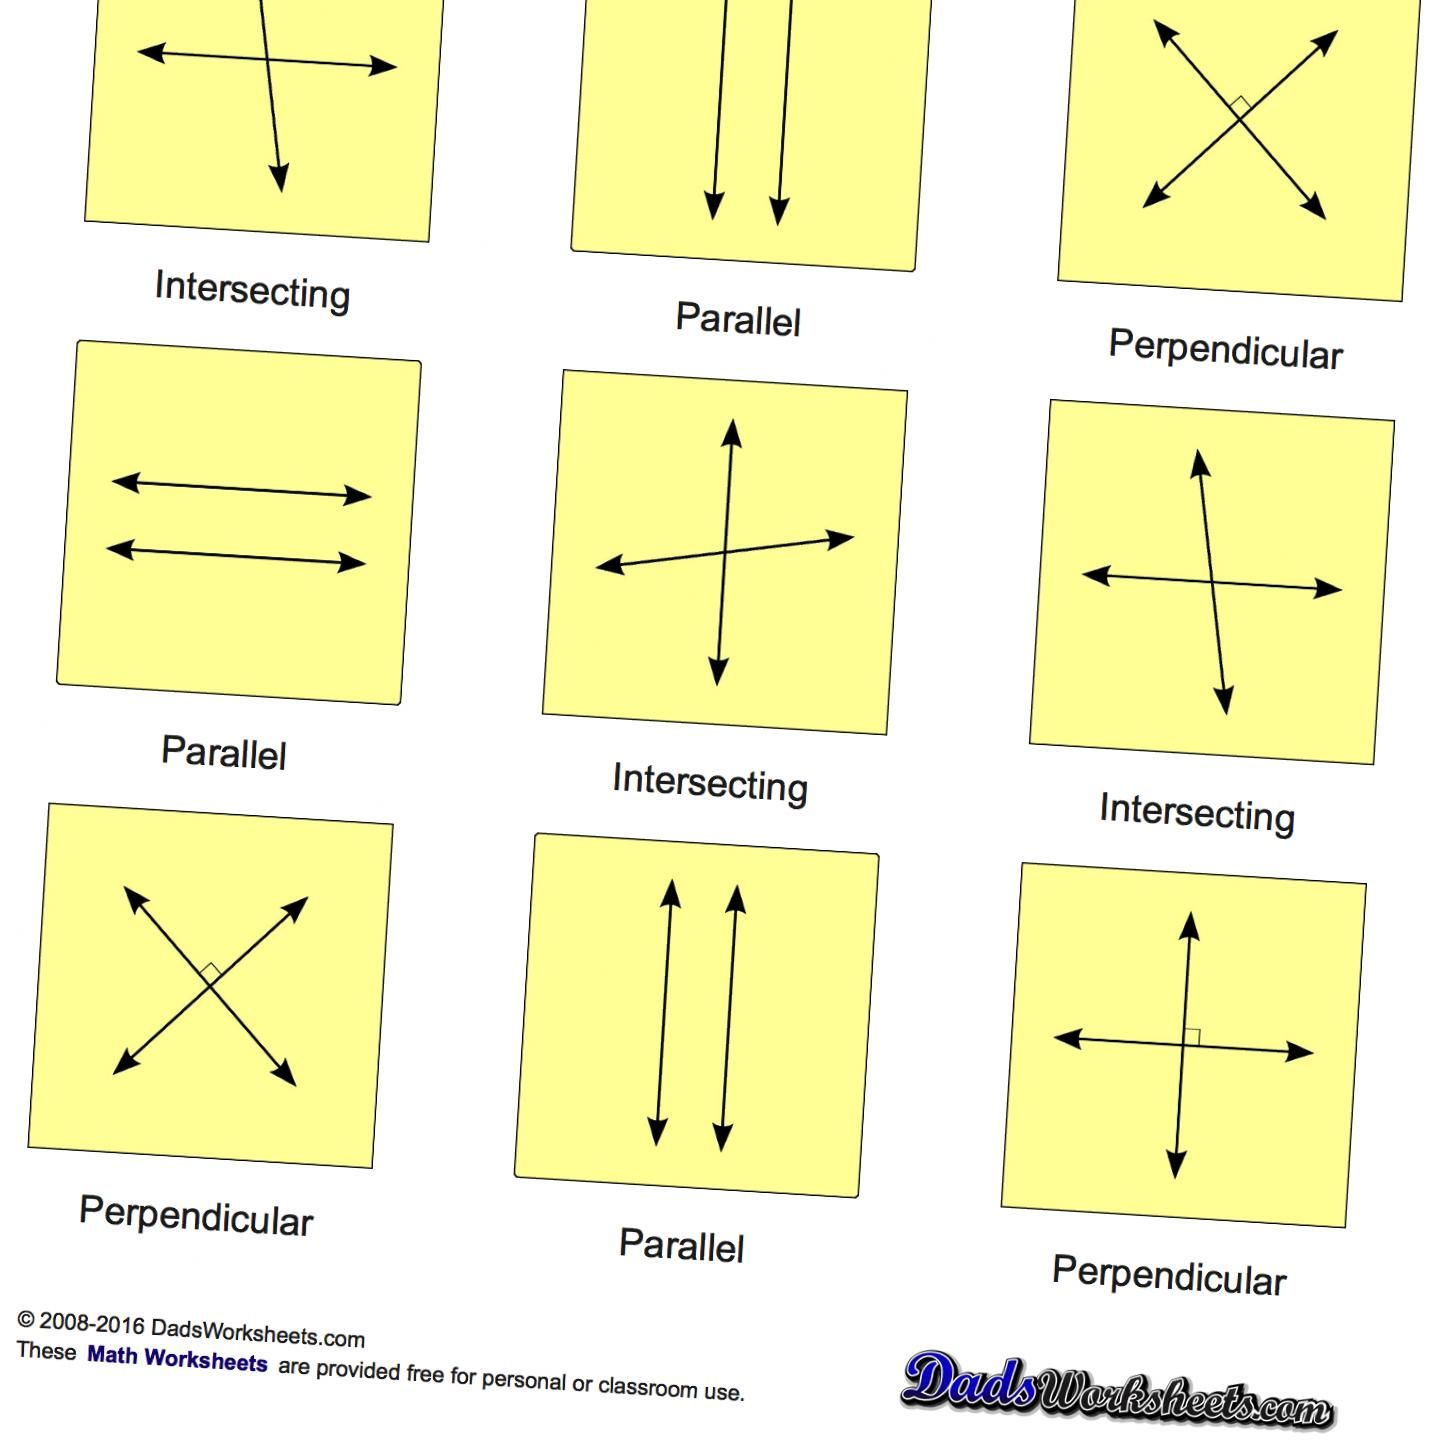 The Basic Geometry Worksheets In This Section Cover A